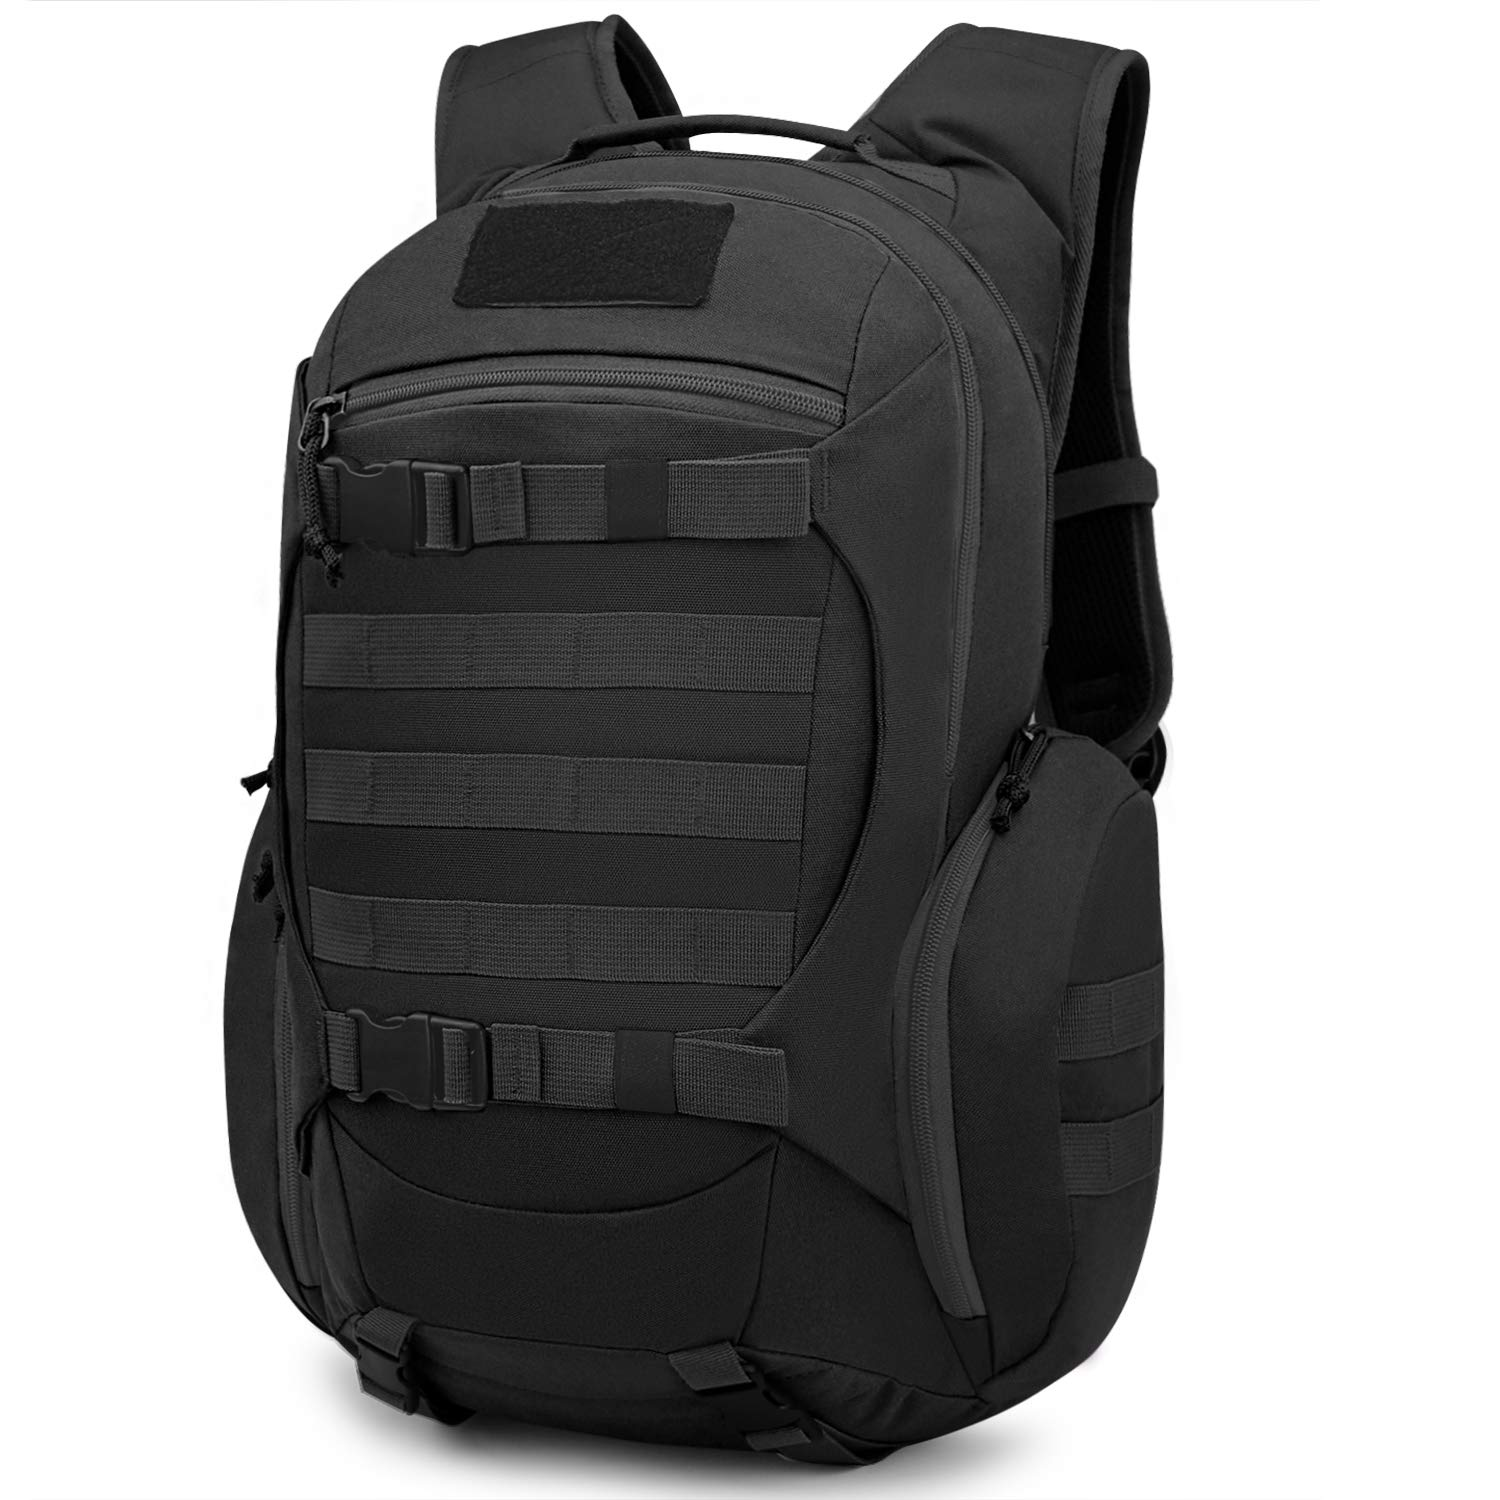 Mardingtop 28L Tactical Backpacks Molle Hiking daypacks for Camping Hiking Military Traveling 28L-Black